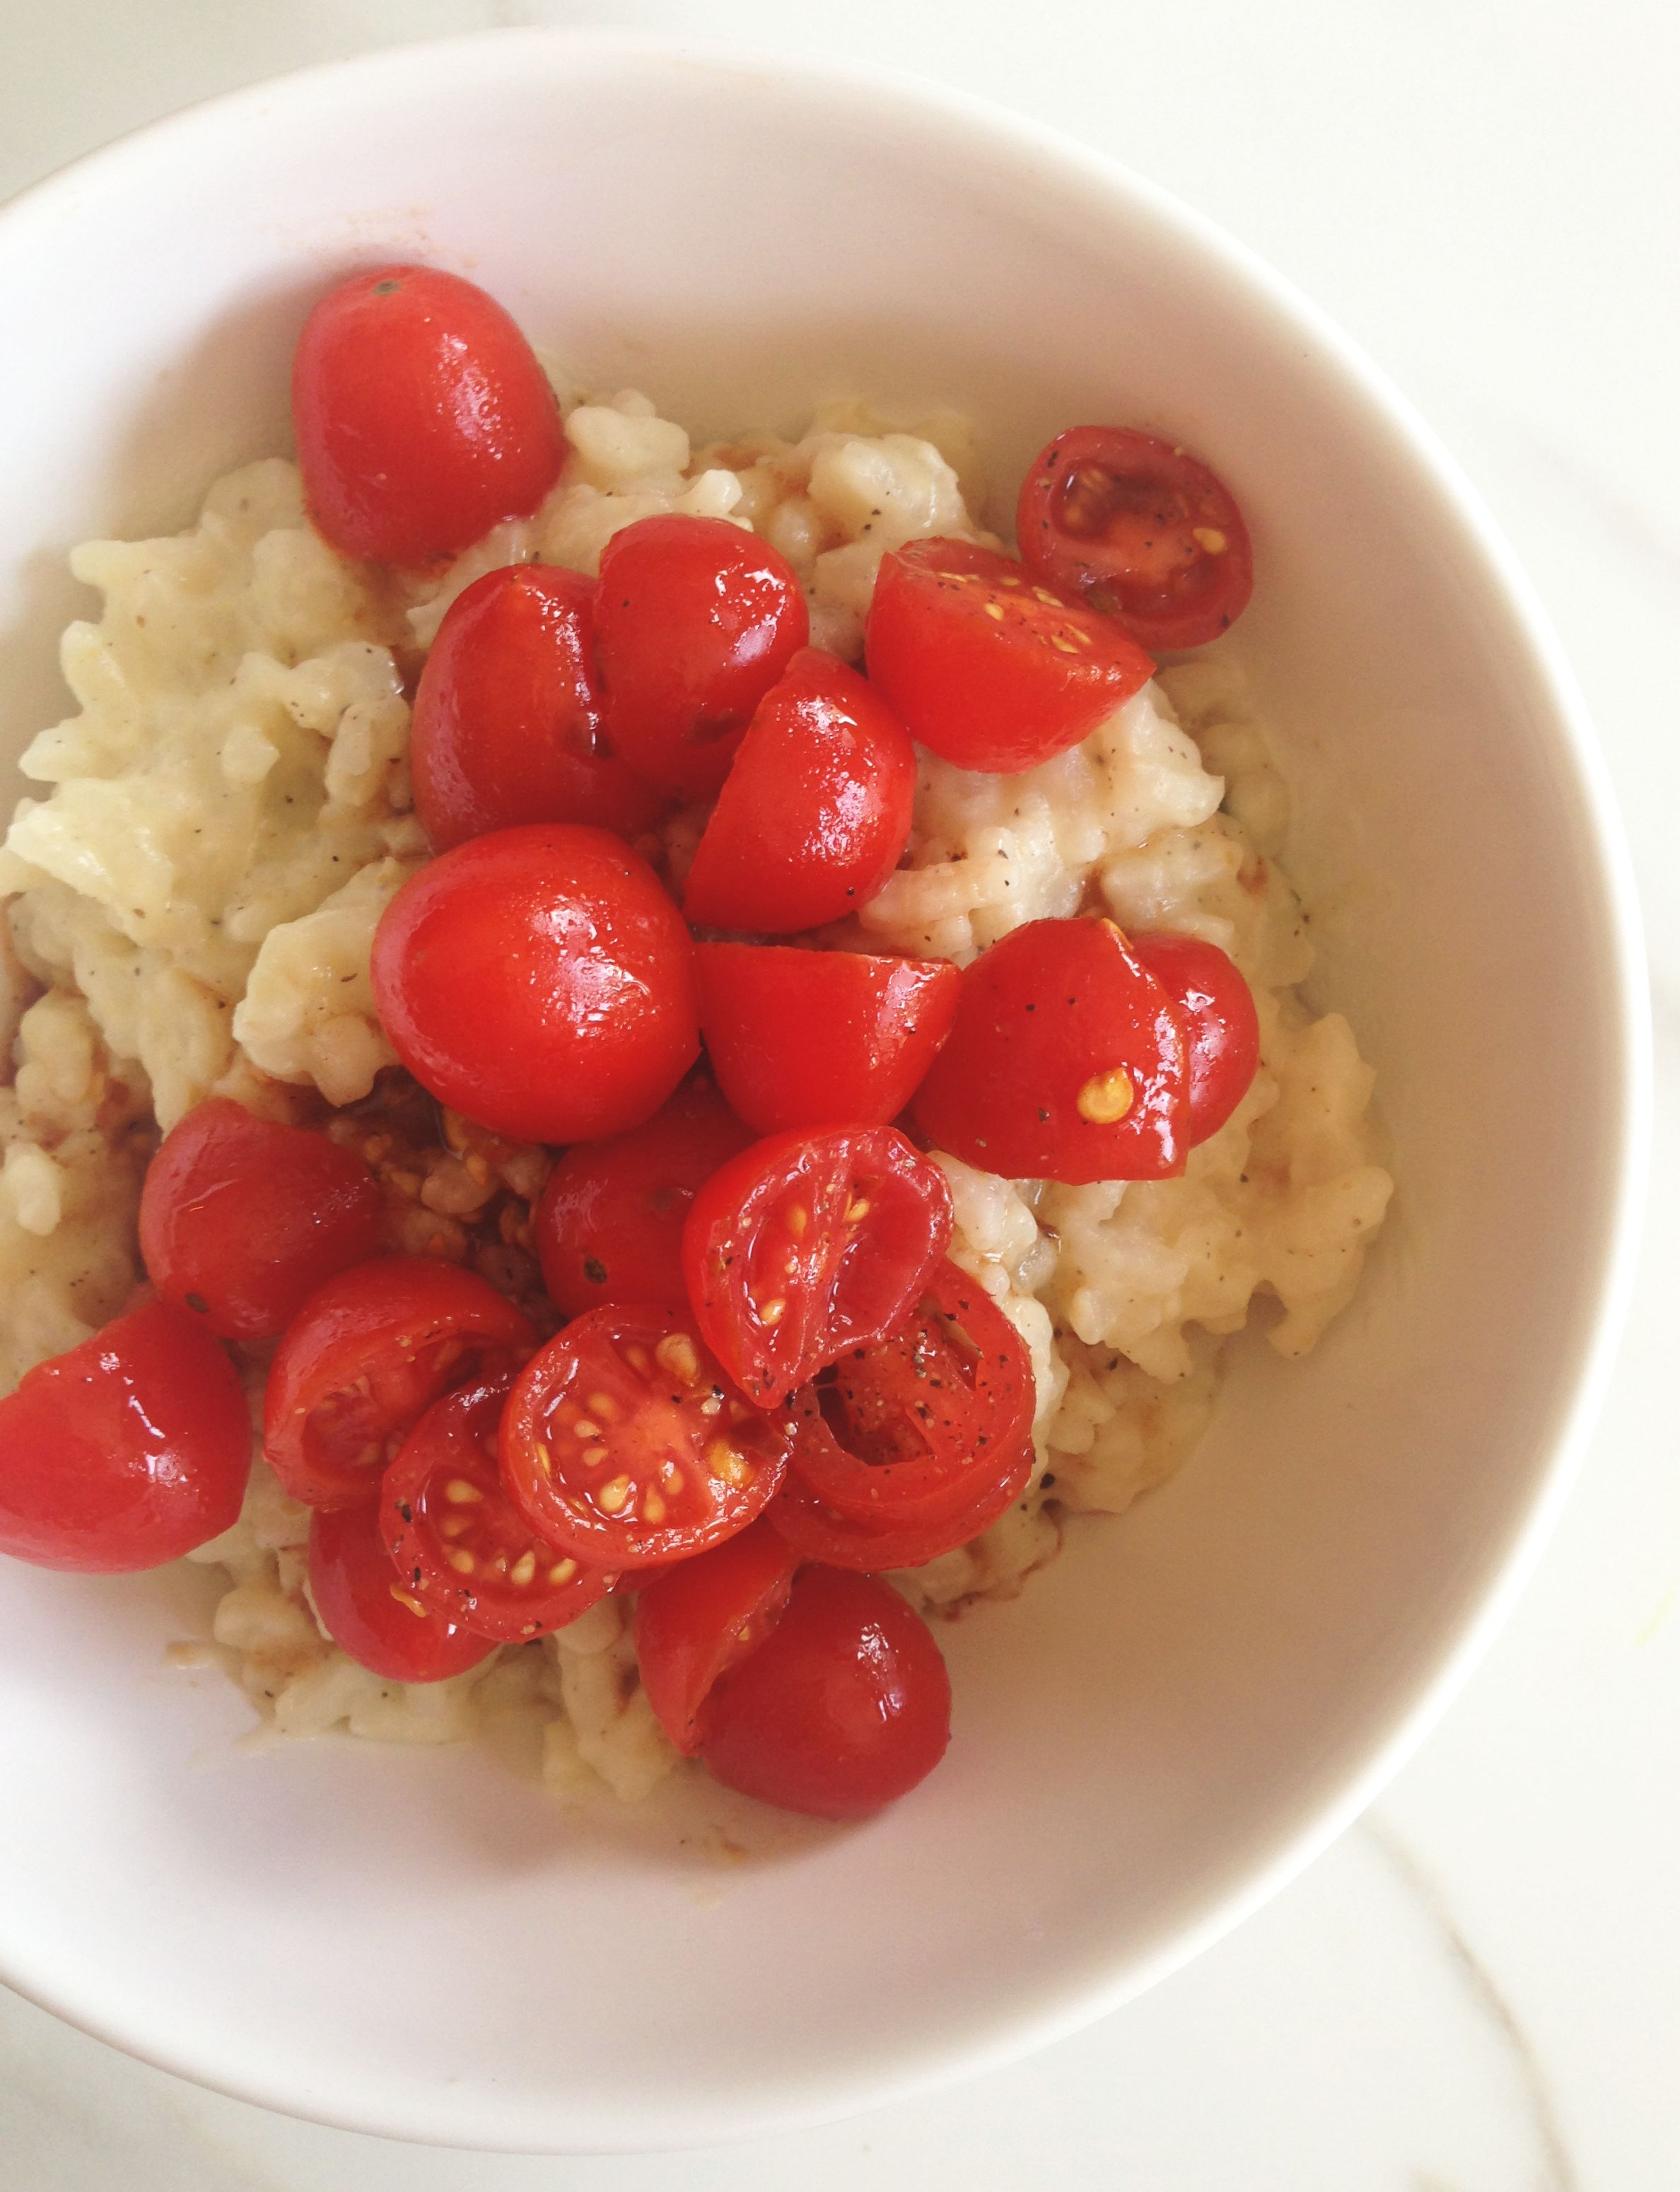 Parmesan-Basil Risotto with Balsamic Tomato Topping